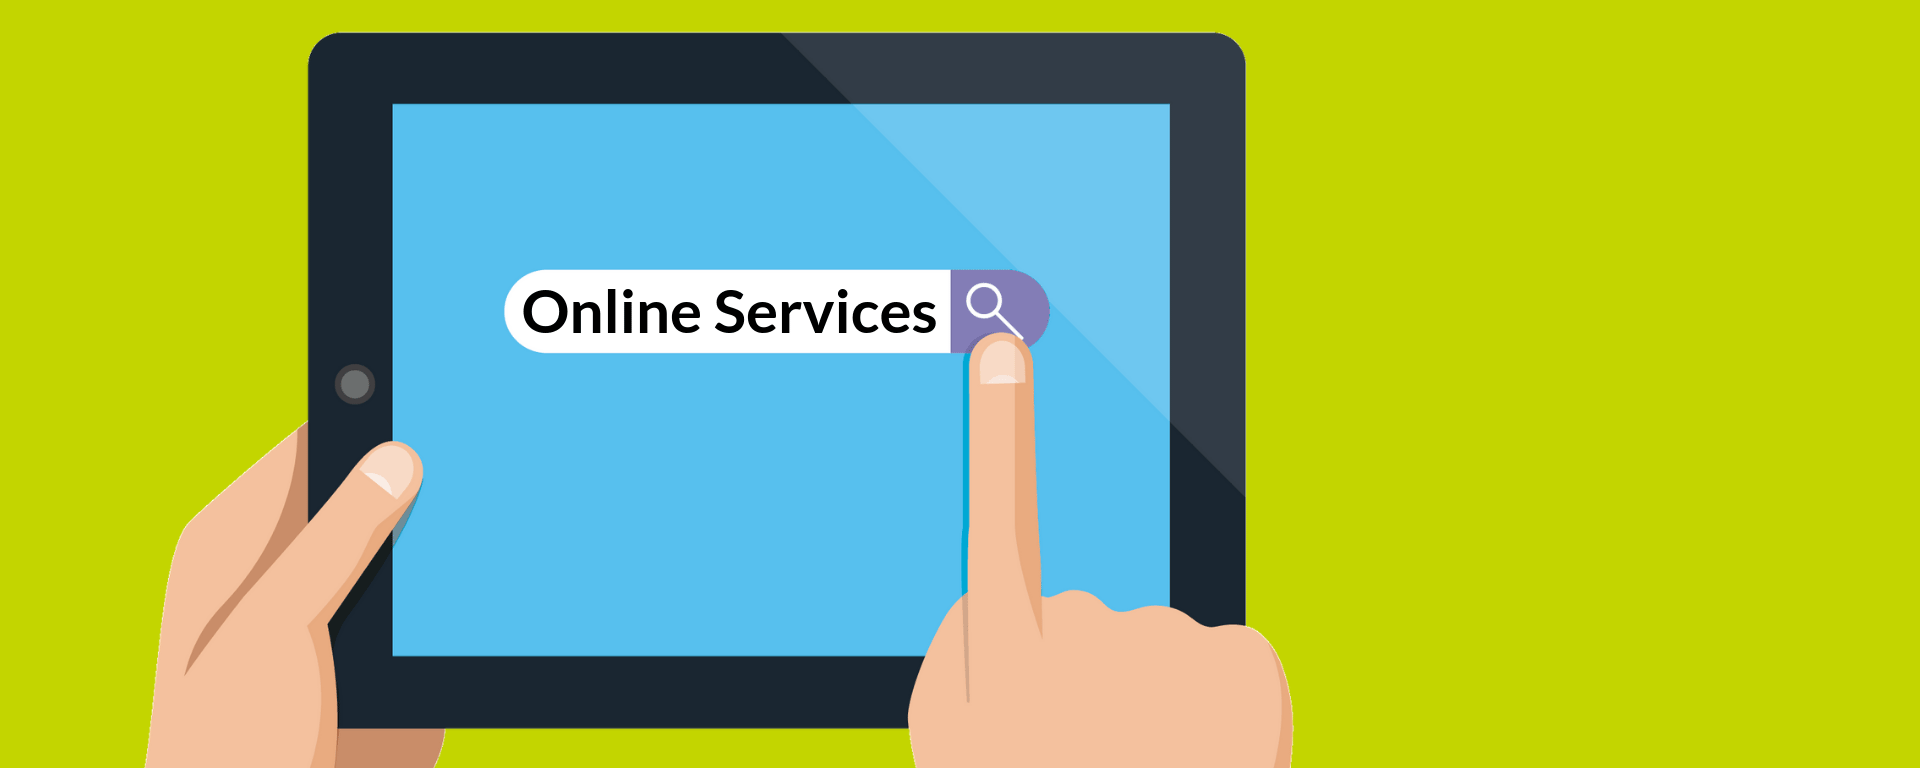 graphic of an tablet device with the text 'Online Services' in the search bar